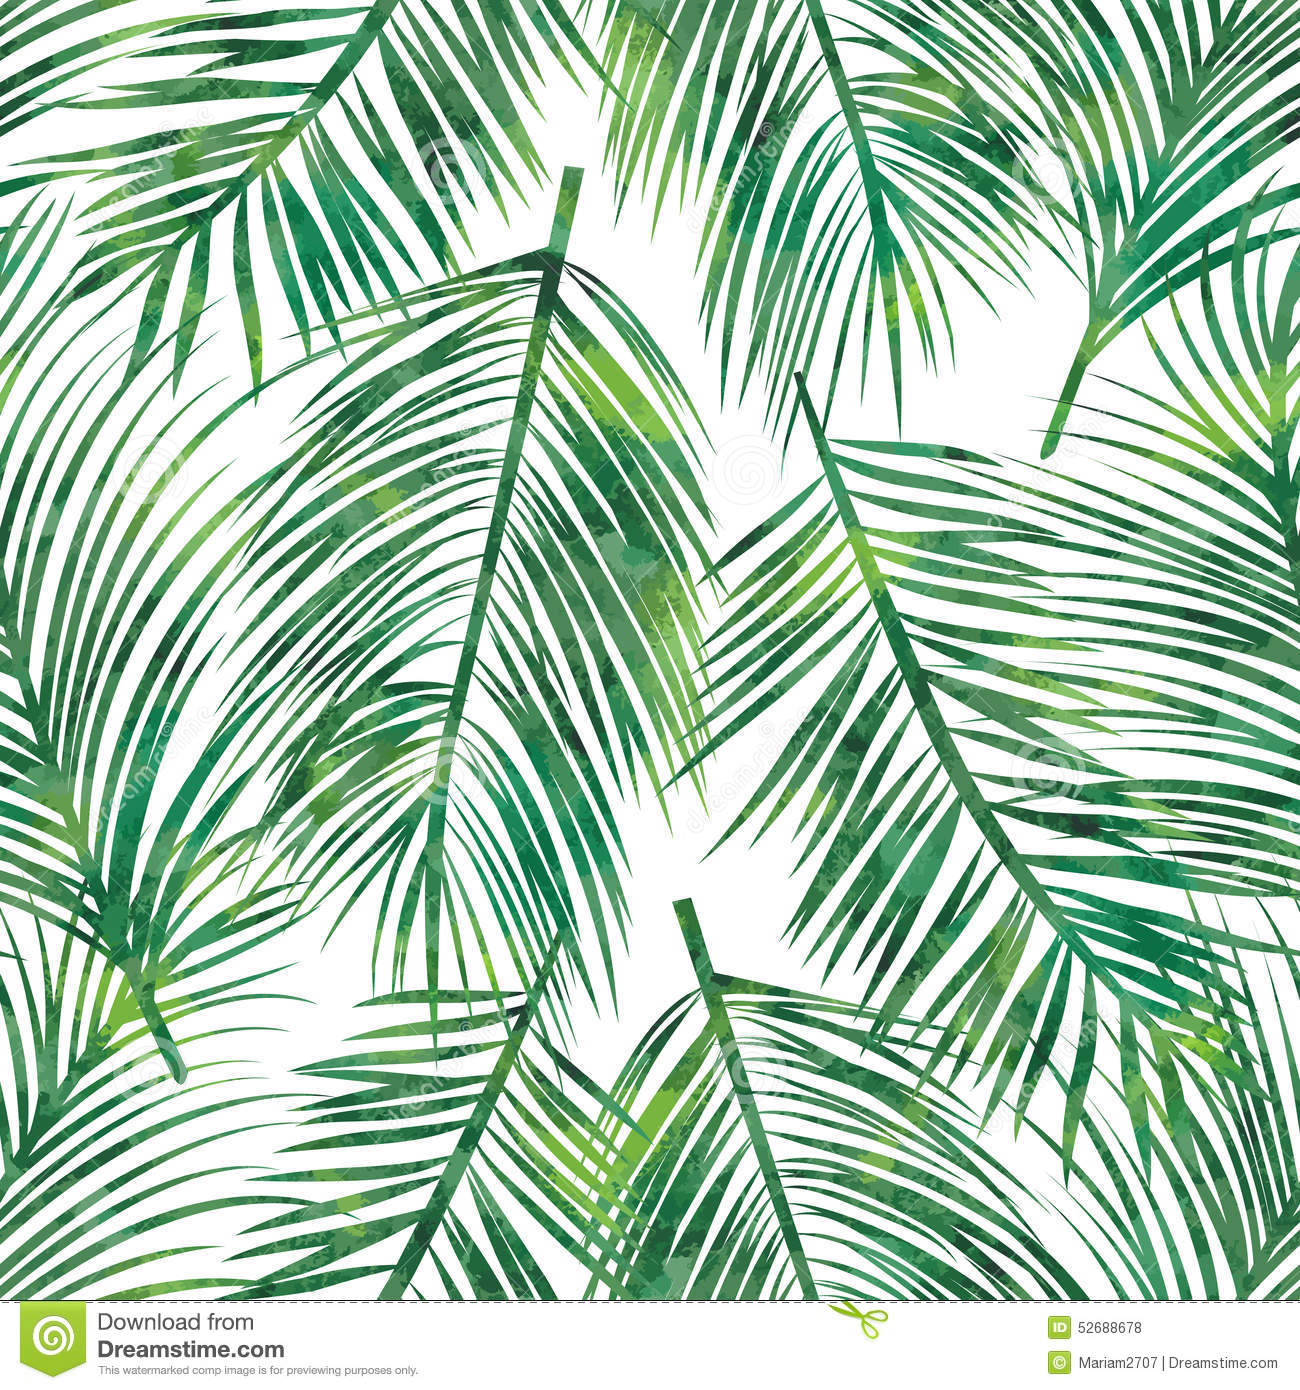 3d Wallpaper For Bedroom Walls Palm Leaf Seamless Pattern Stock Vector Image 52688678